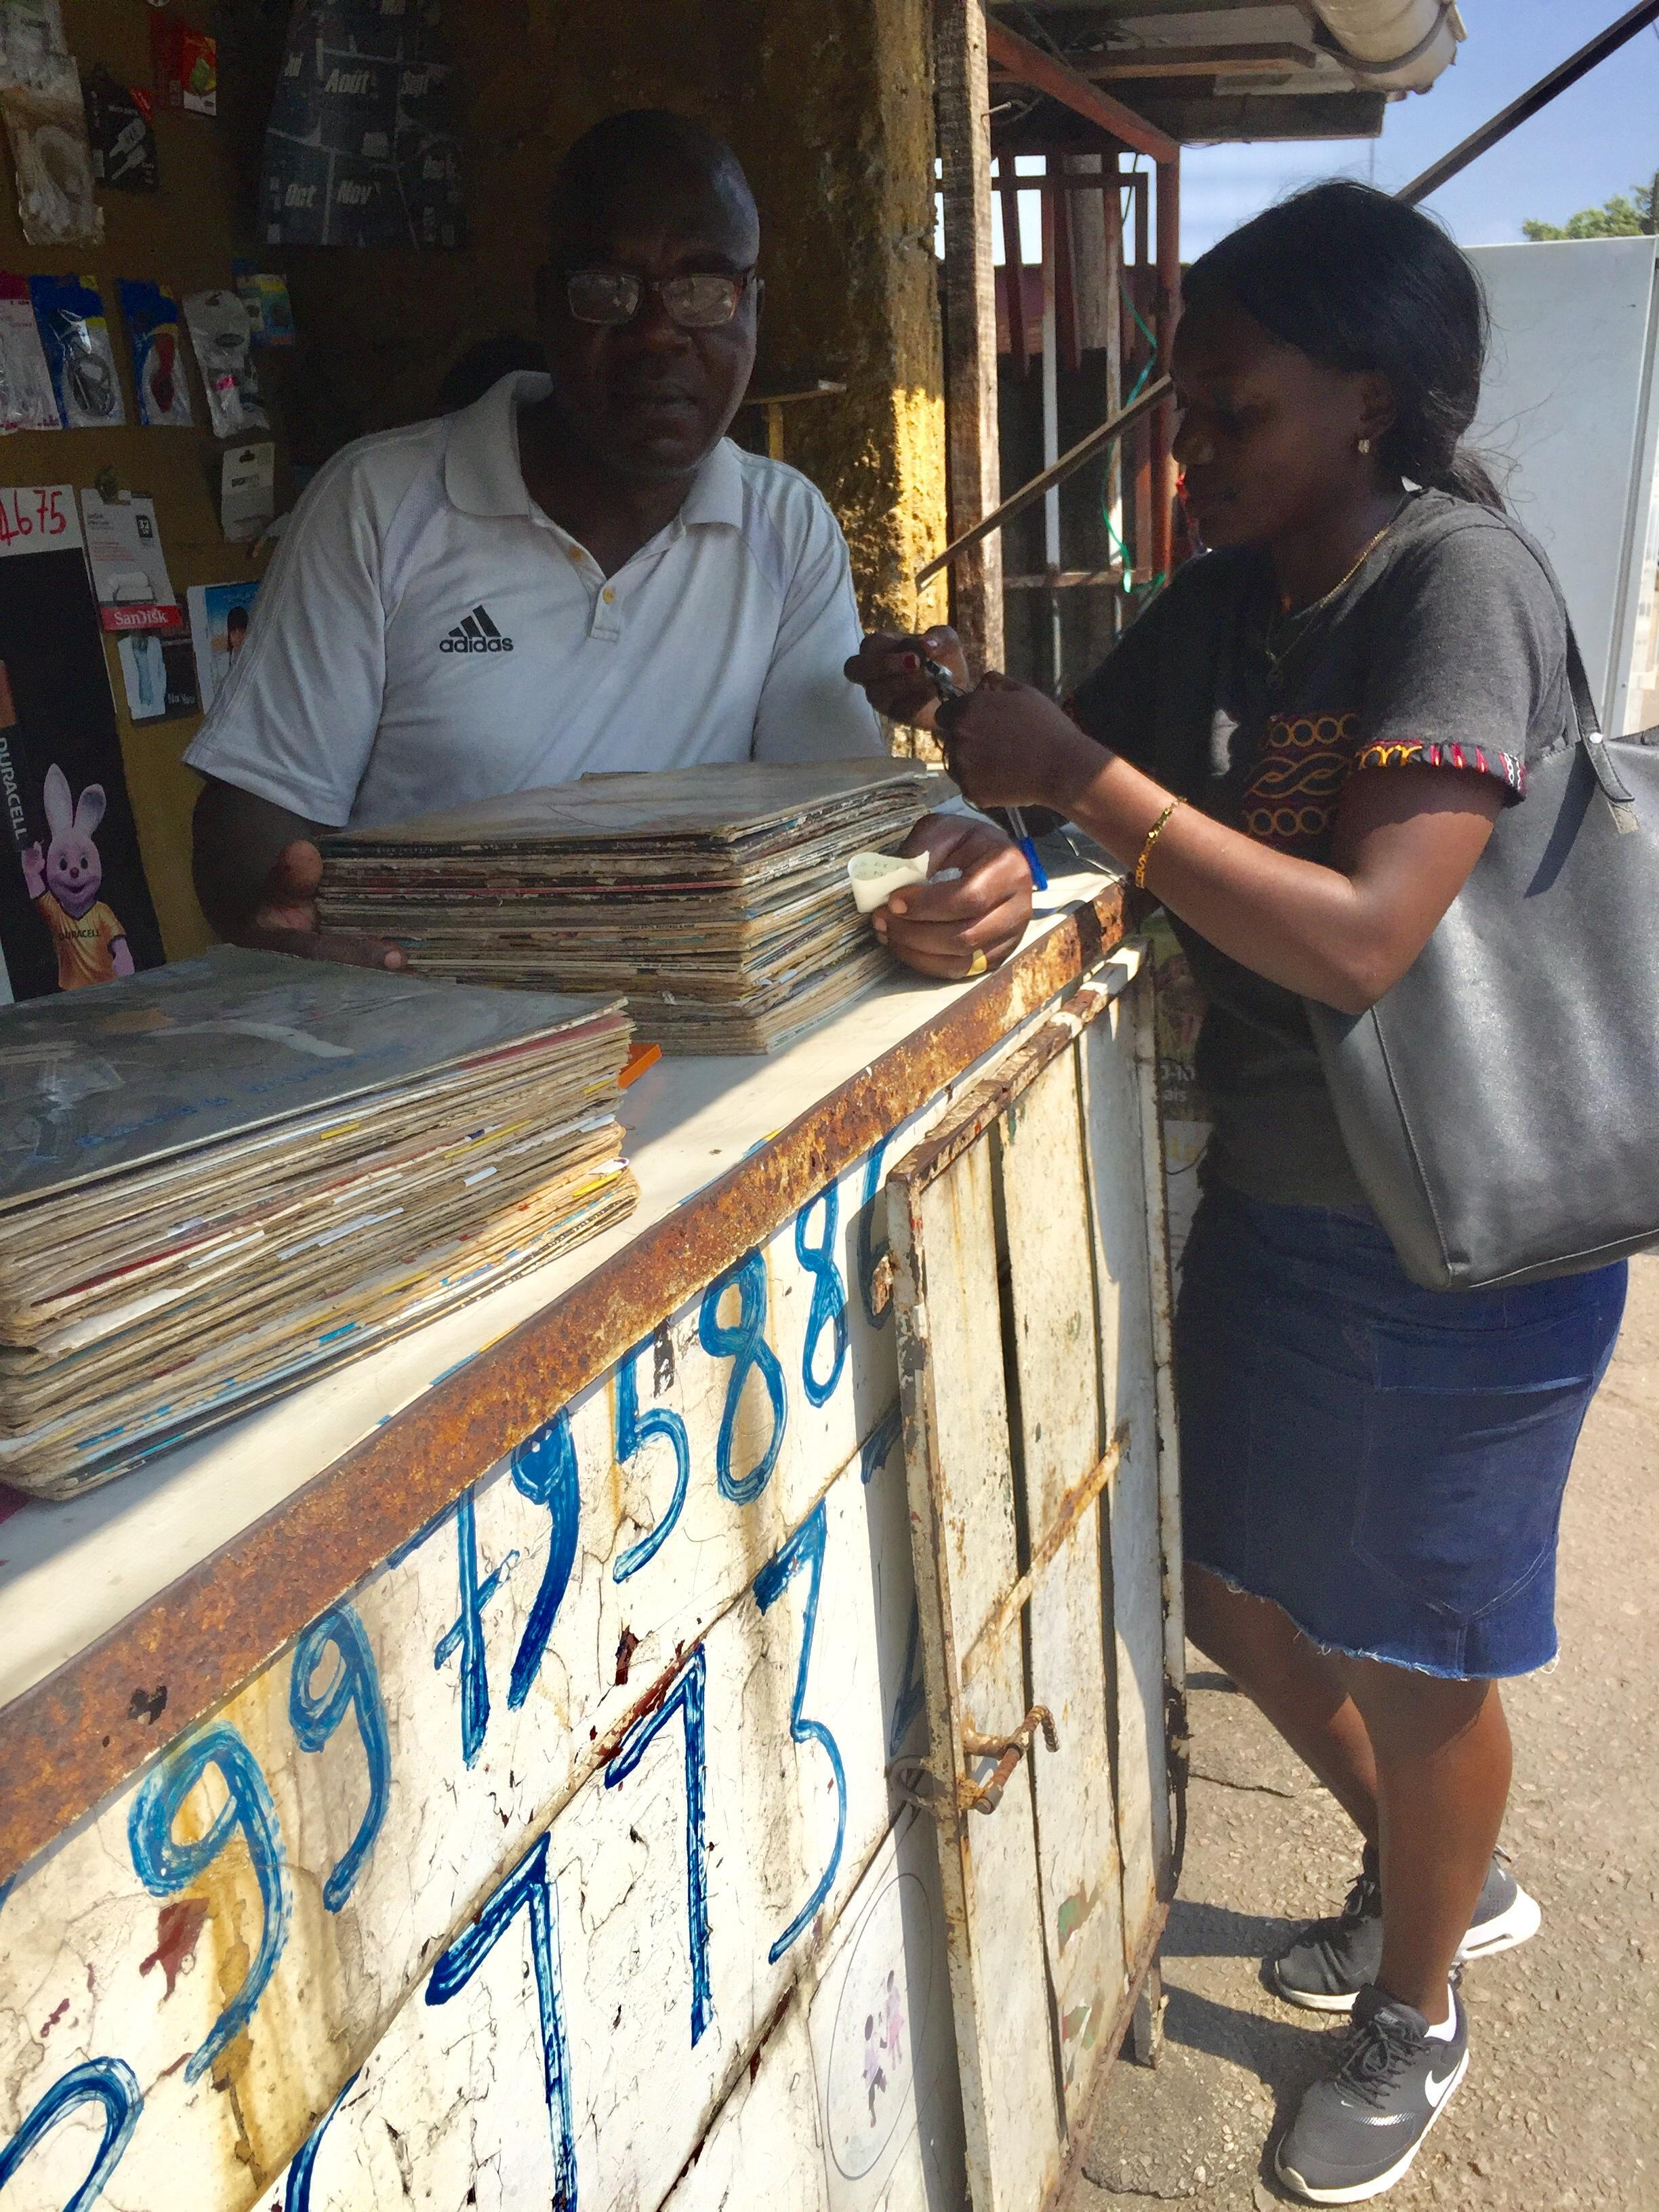 Record store owner Valdano (l) with journalist Cynthia Ngwemoh at his vinyl record shop, Valdano in Douala, Cameroon